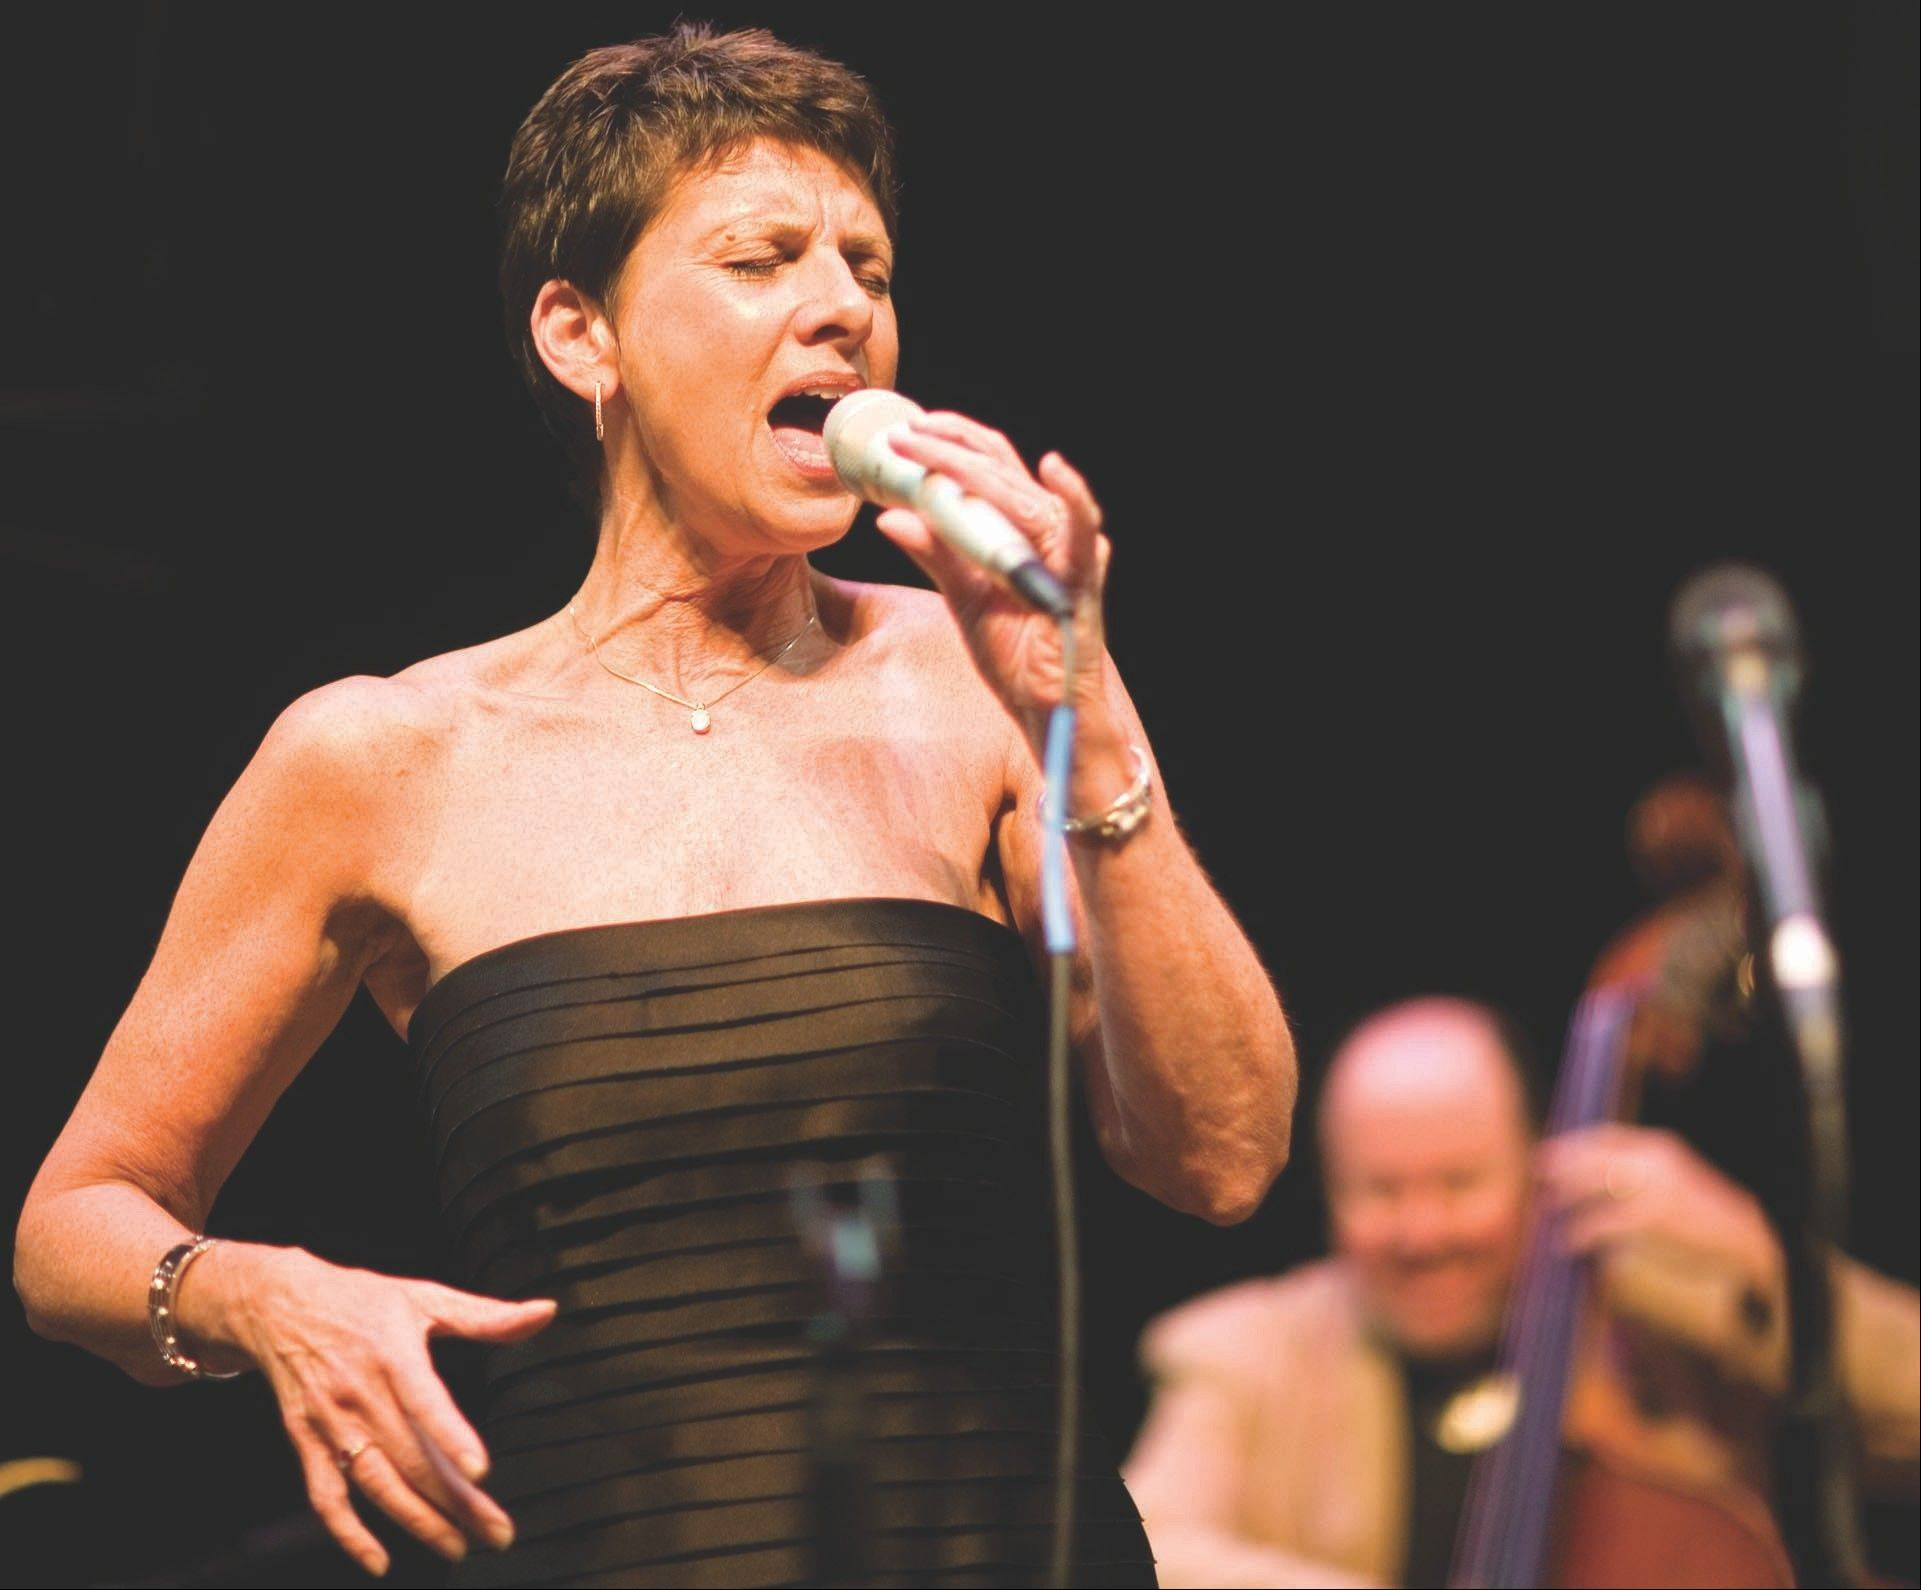 Janice Borla brings her vocal jazz camp and concert series to North Central College for its 25th anniversary this summer.